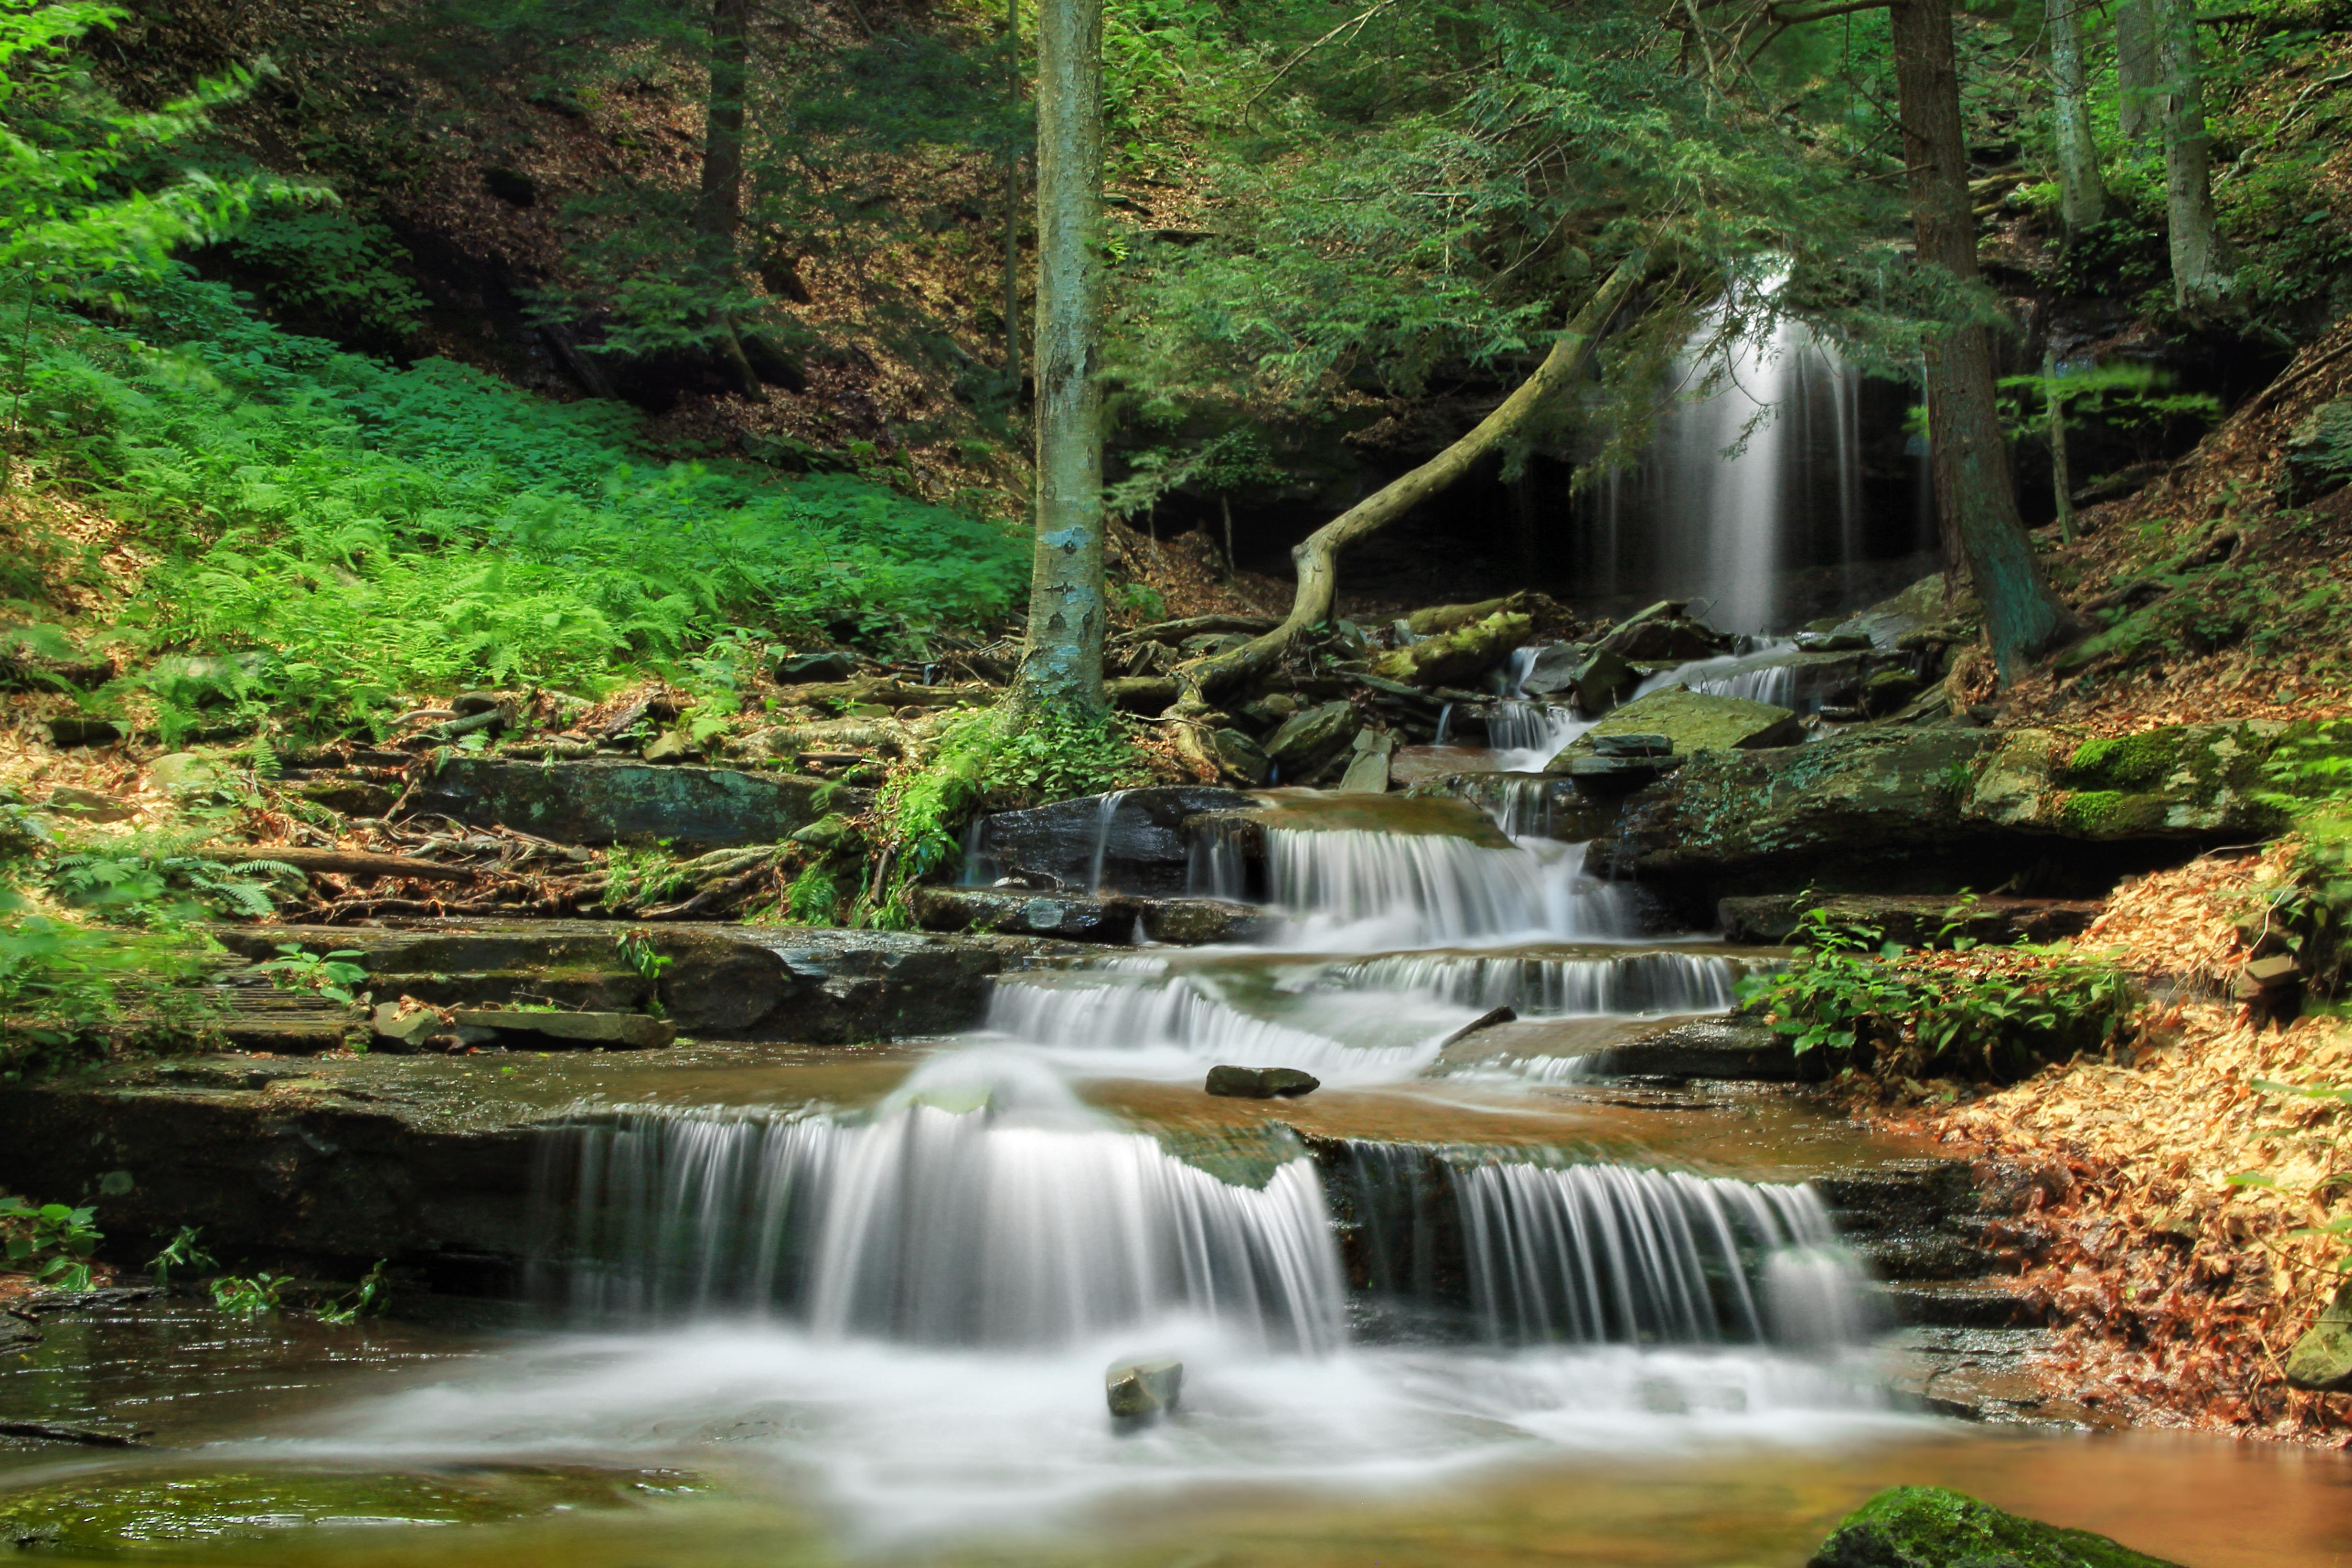 Free picture water, waterfall, forest, ecology, stream, wilderness, river, nature, wood, leaf